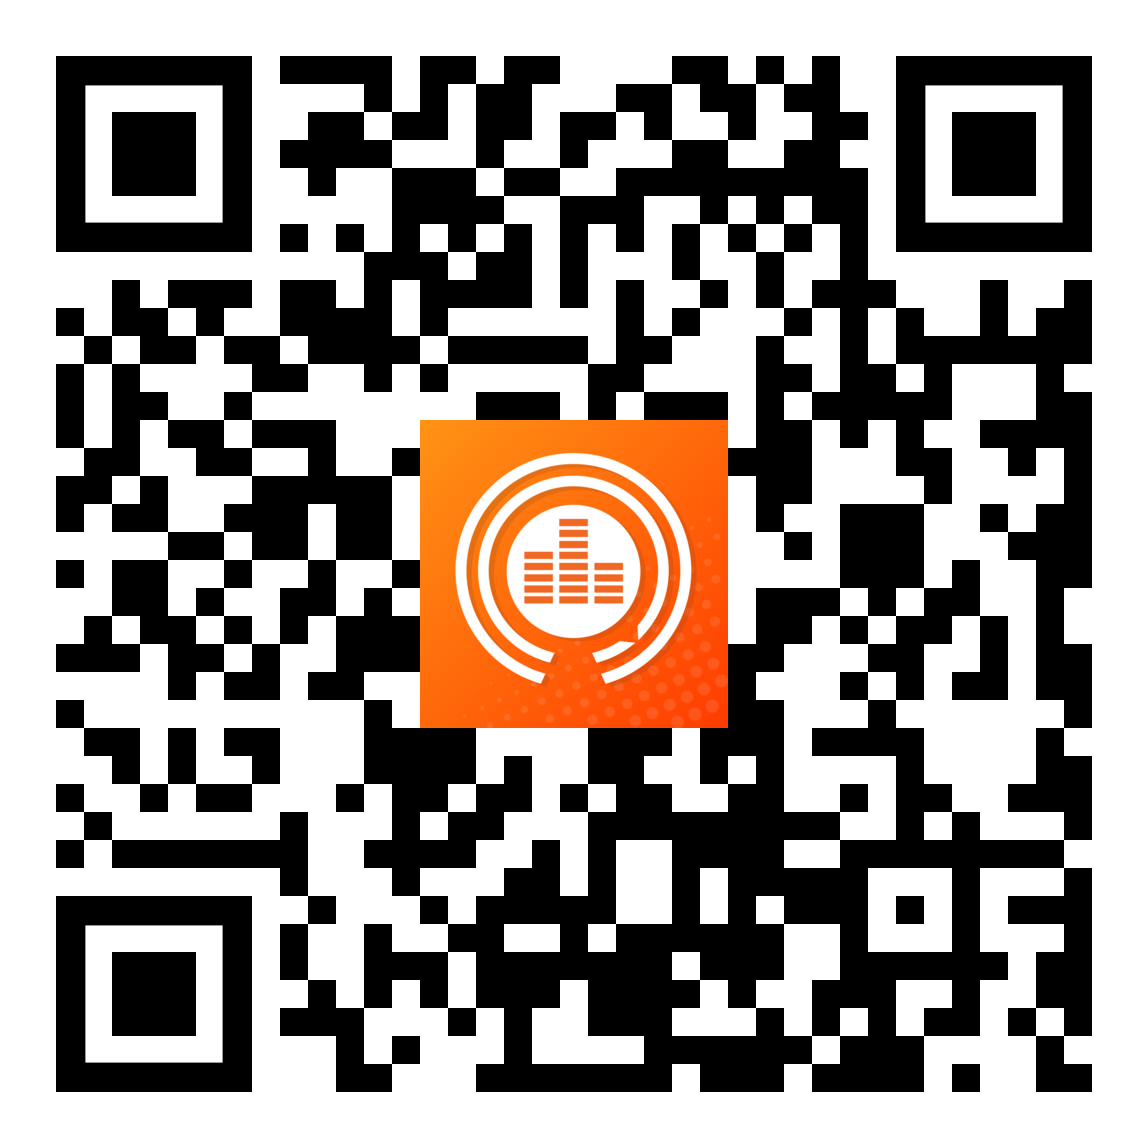 https://www.thaipbspodcast.com/cn-manage/assets/ckfinder/userfiles/files/0qr-Podcast.png